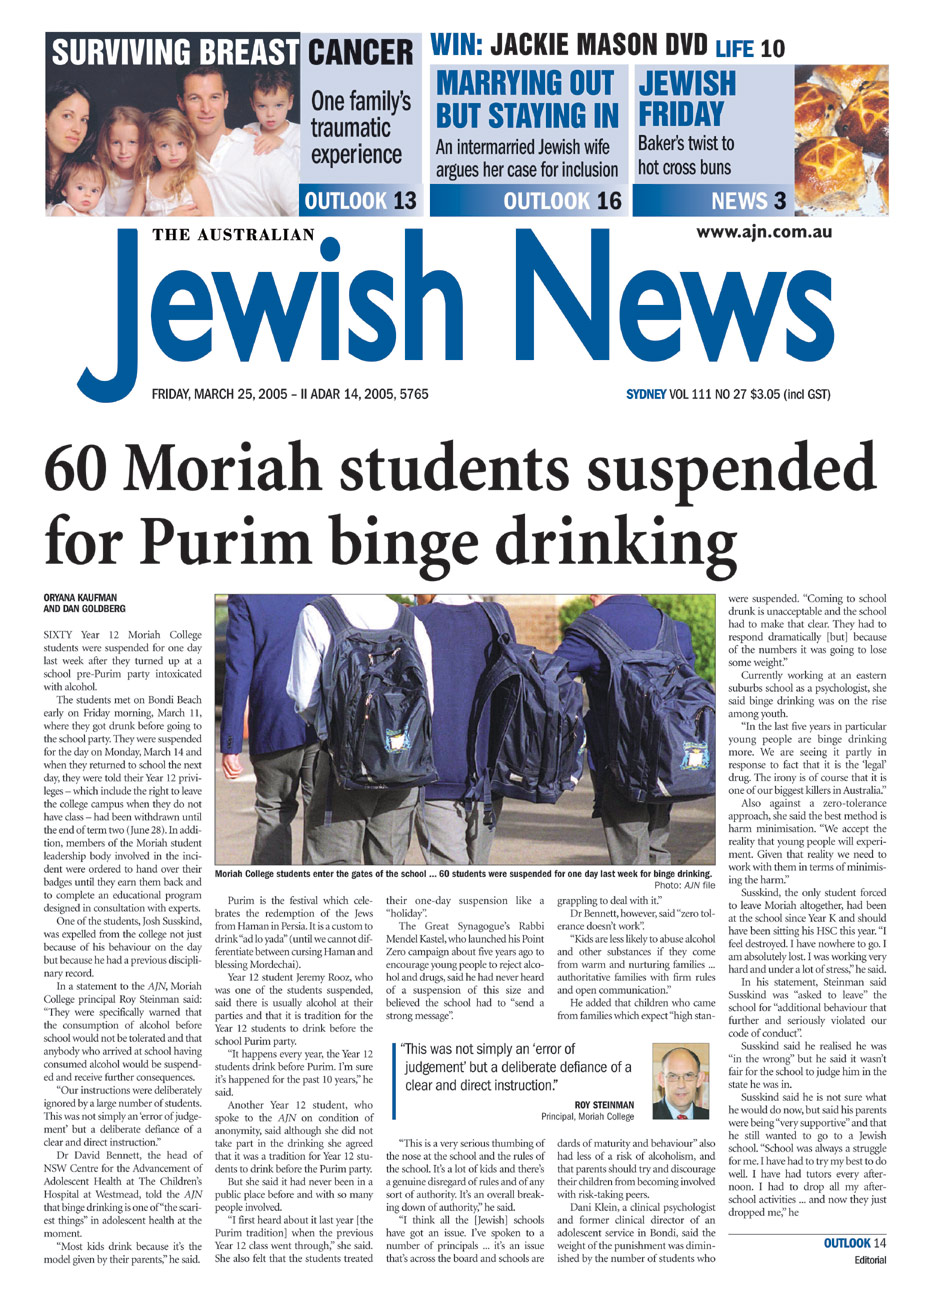 Sixty Year 12 Moriah students were suspended last week after they turned up to a pre-Purim party intoxicated with alcohol.